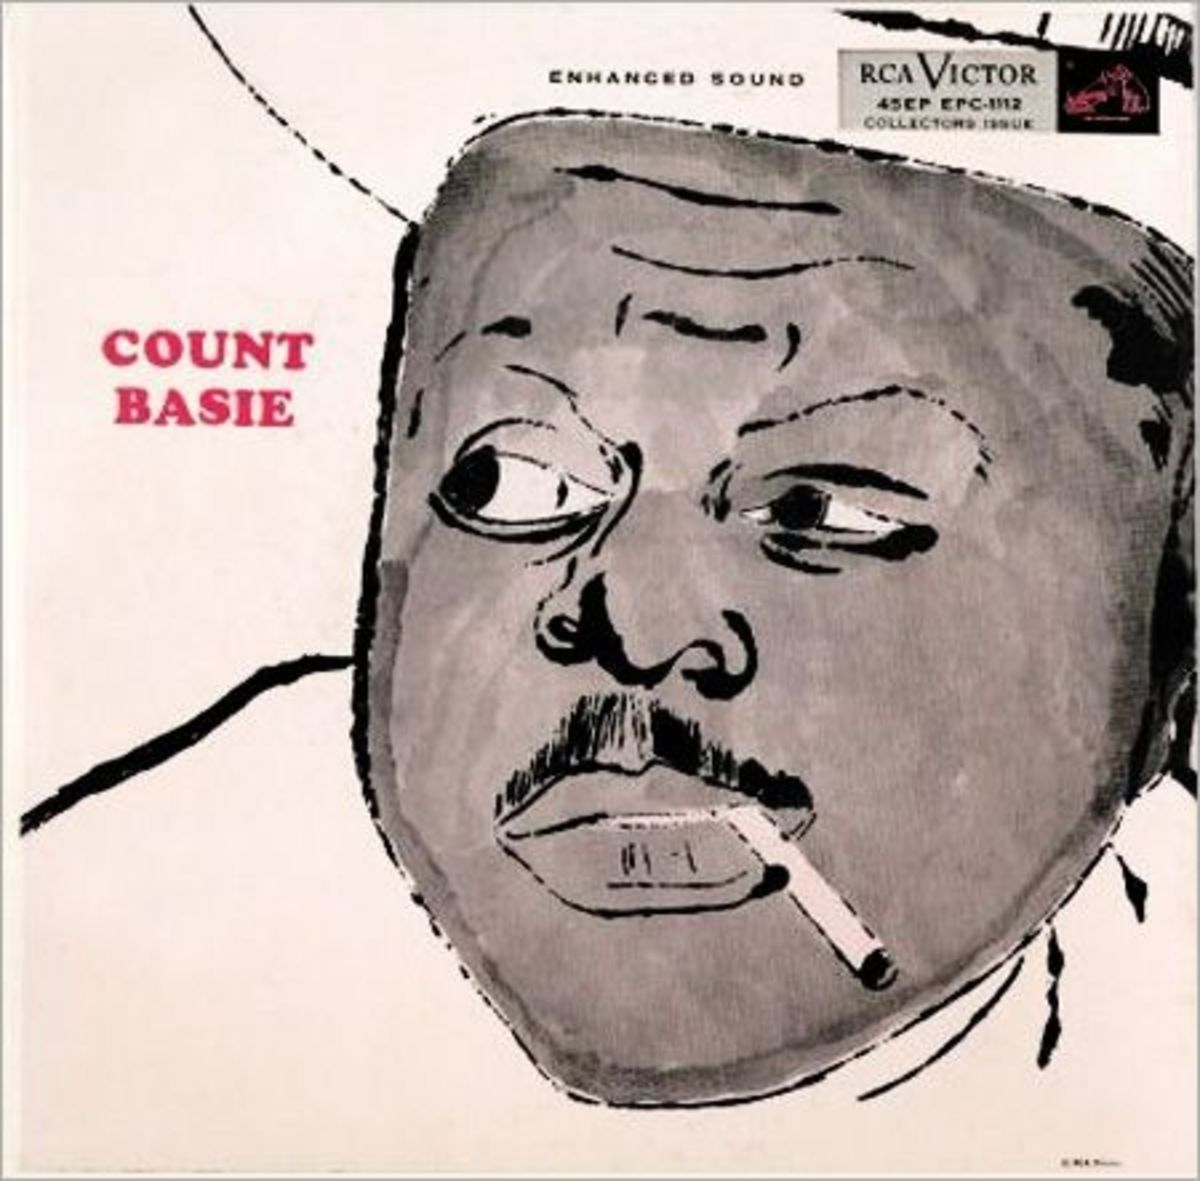 "Count Basie RCA Victor Records EPC-1112  Vintage 7"" Vinyl EP 1955 Cover Illustration by Andy Warhol"